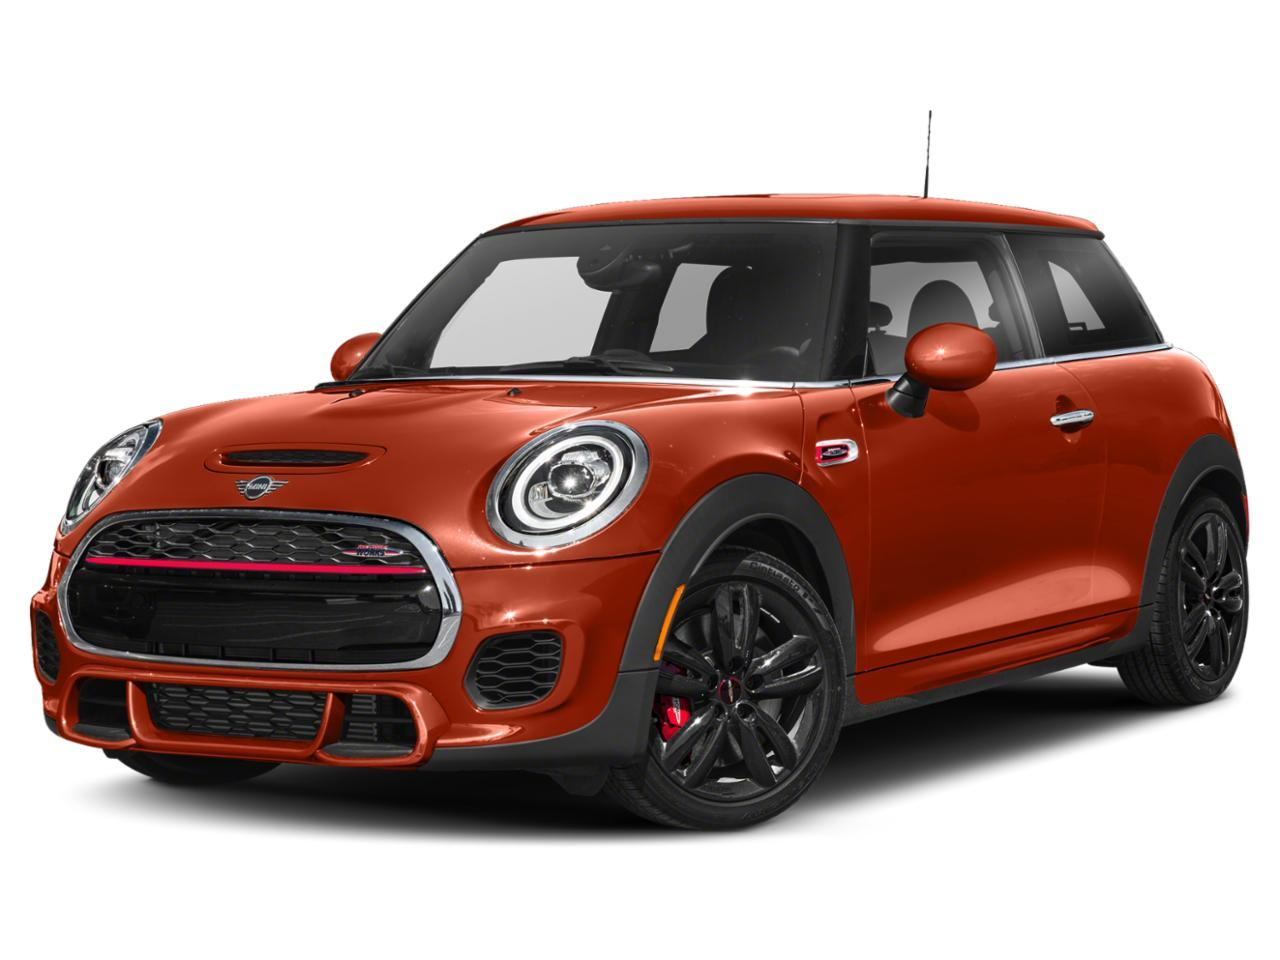 2019 MINI John Cooper Works Hardtop Iconic Vehicle Photo in Pleasanton, CA 94588